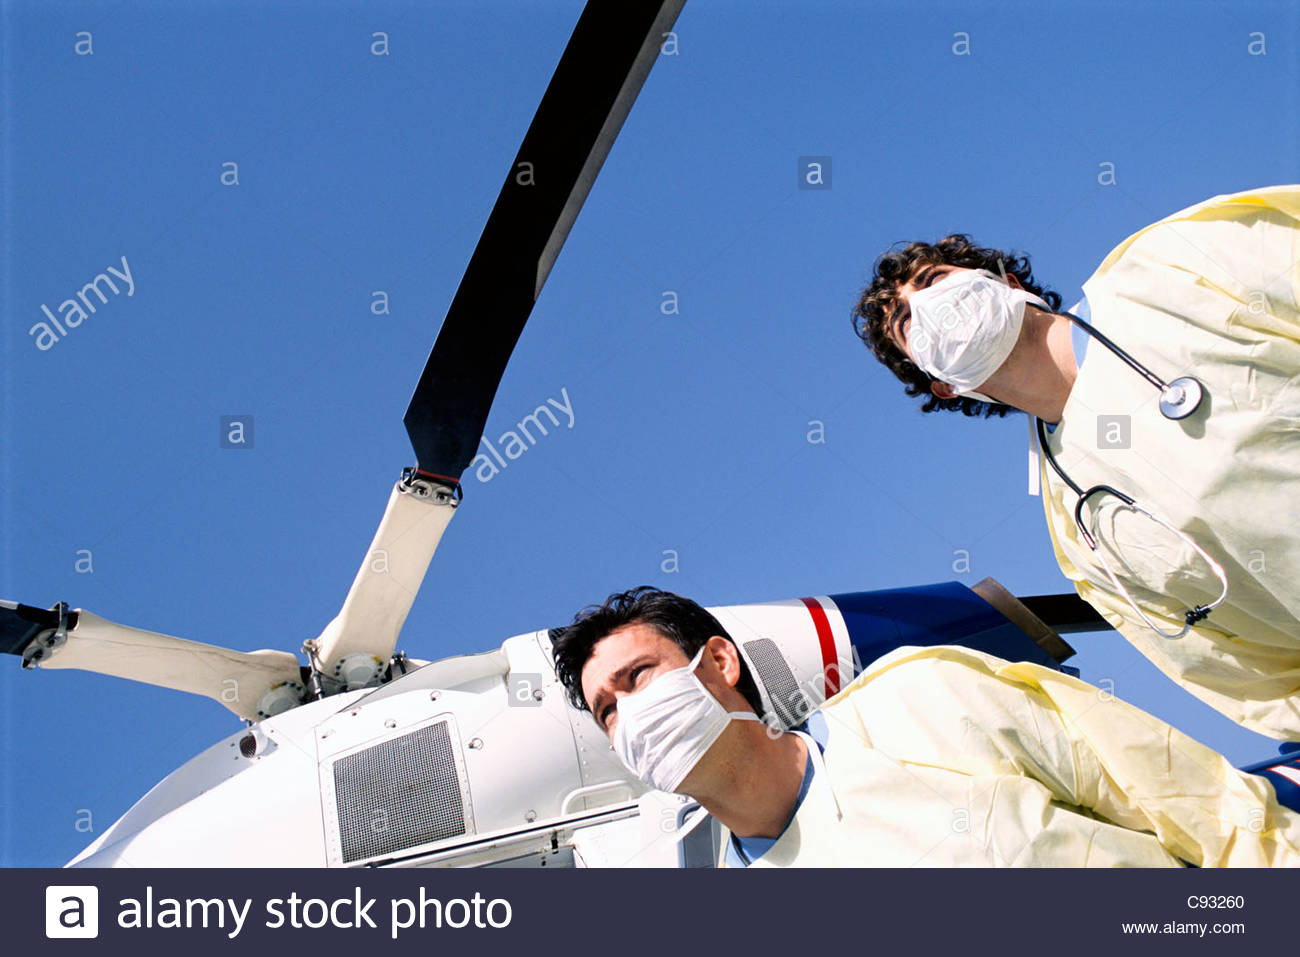 Doctors with surgical masks standing below emergency airlift helicopter - Stock Image